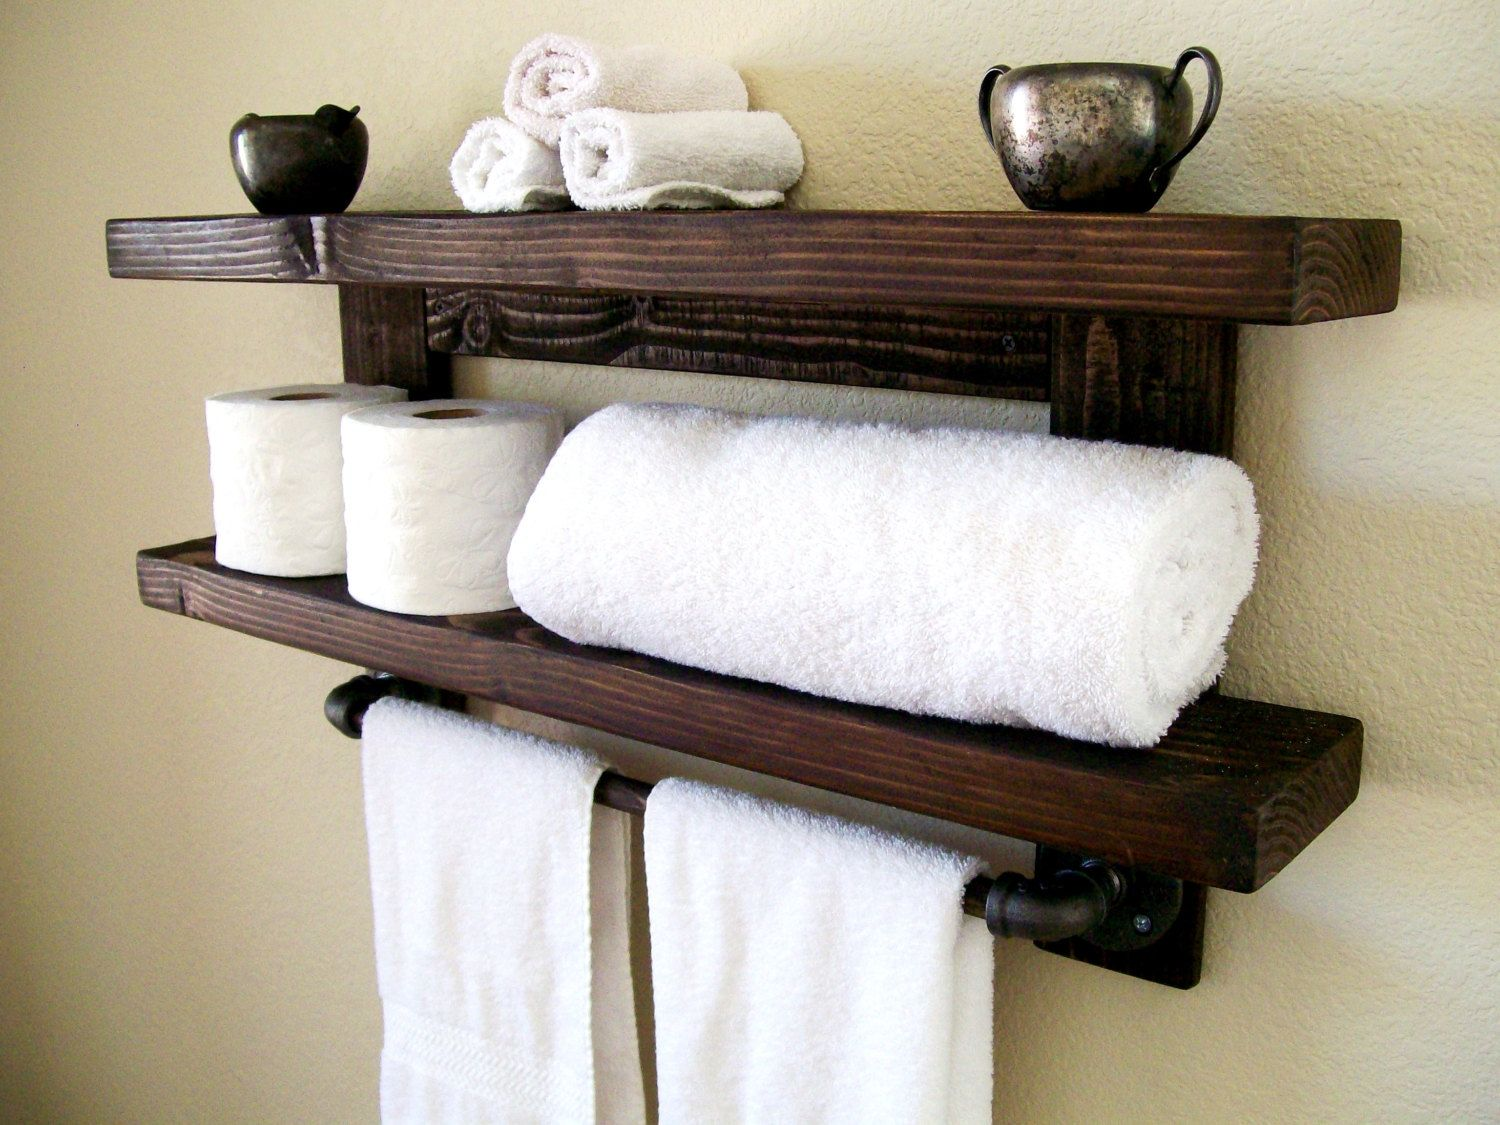 Decorative Towel Holders Bathroom on decorative bathroom wall art, decorative bathroom trays, decorative kitchen paper towel holders, blacksmith made paper towel holders, decorative bathroom wastebaskets, metal hand towel holders, decorative bathroom furniture, decorative bath towel sets, decorative bathroom chairs, decorative bathroom baskets, decorative wall towel holders, decorative countertop towel holders, decorative bath towels gift, decorative hand towels, fancy towel holders, nautical towel holders, decorative metal paper towel holders, decorative towel racks, decorative bathroom mirrors, decorative towel bars,